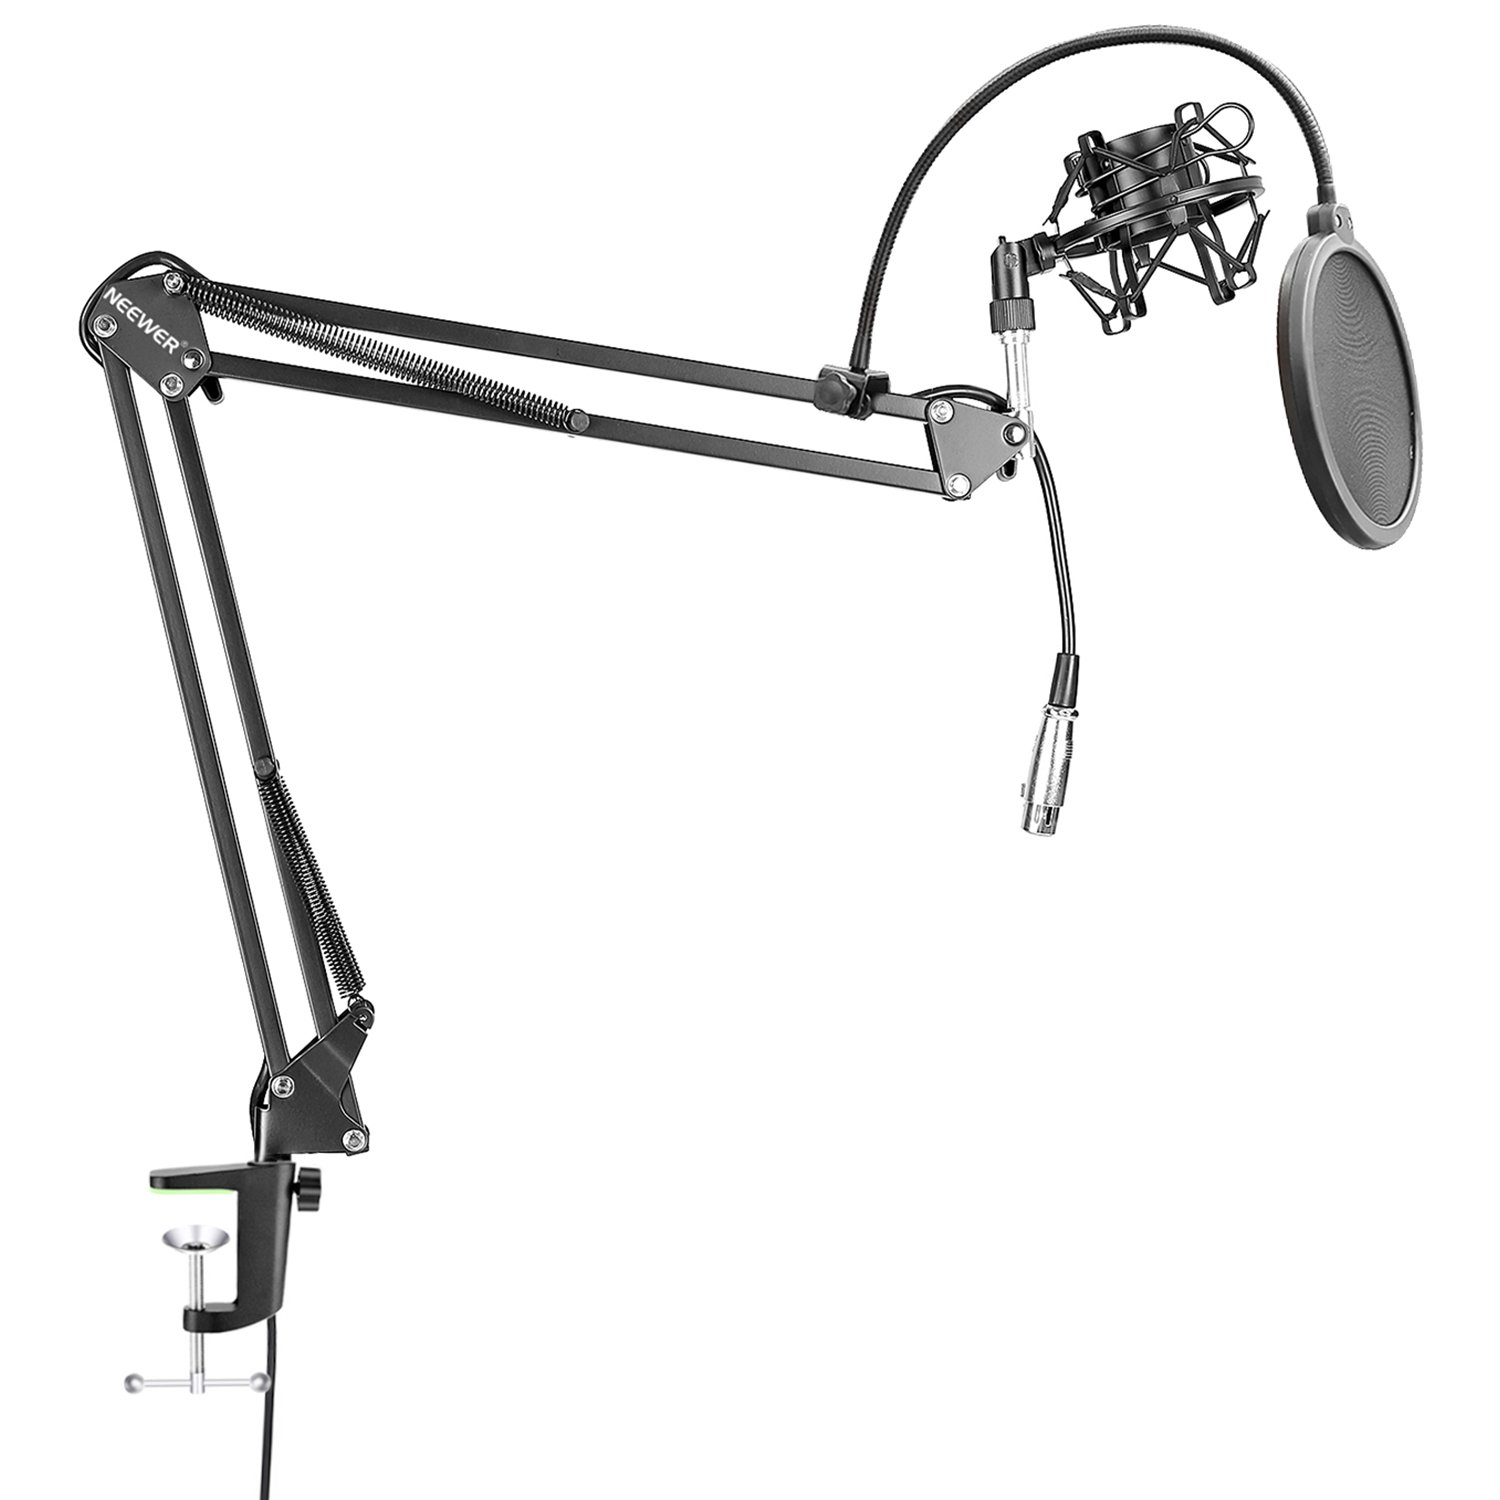 Neewer NW-35 Table-top Microphone Suspension Boom Scissor Arm Stand with Built-in XLR Male to Female Cable, Shock Mount, 6 inch Mic Pop Filter for Radio, Broadcast, Studio and Home Recording (Black) 90091047